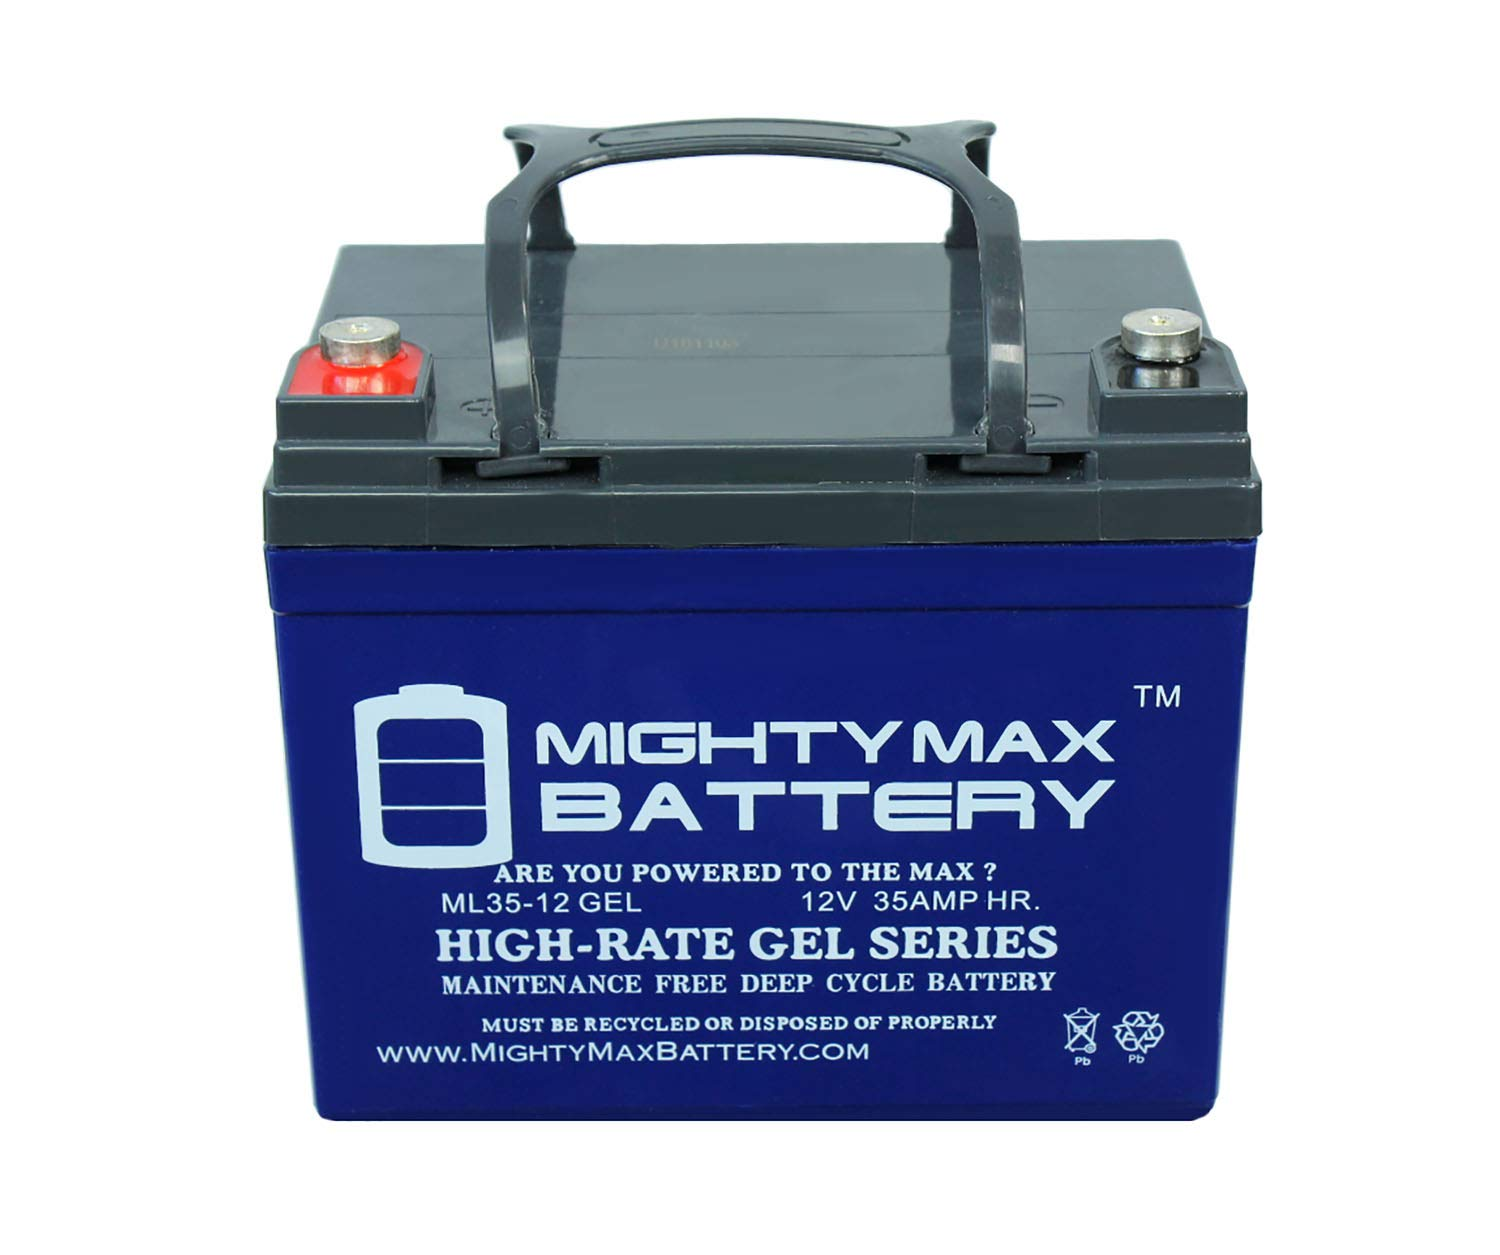 Mighty Max Battery Rechargeable Gel Type Battery 12V (ML35-12GEL) by Mighty Max Battery (Image #2)